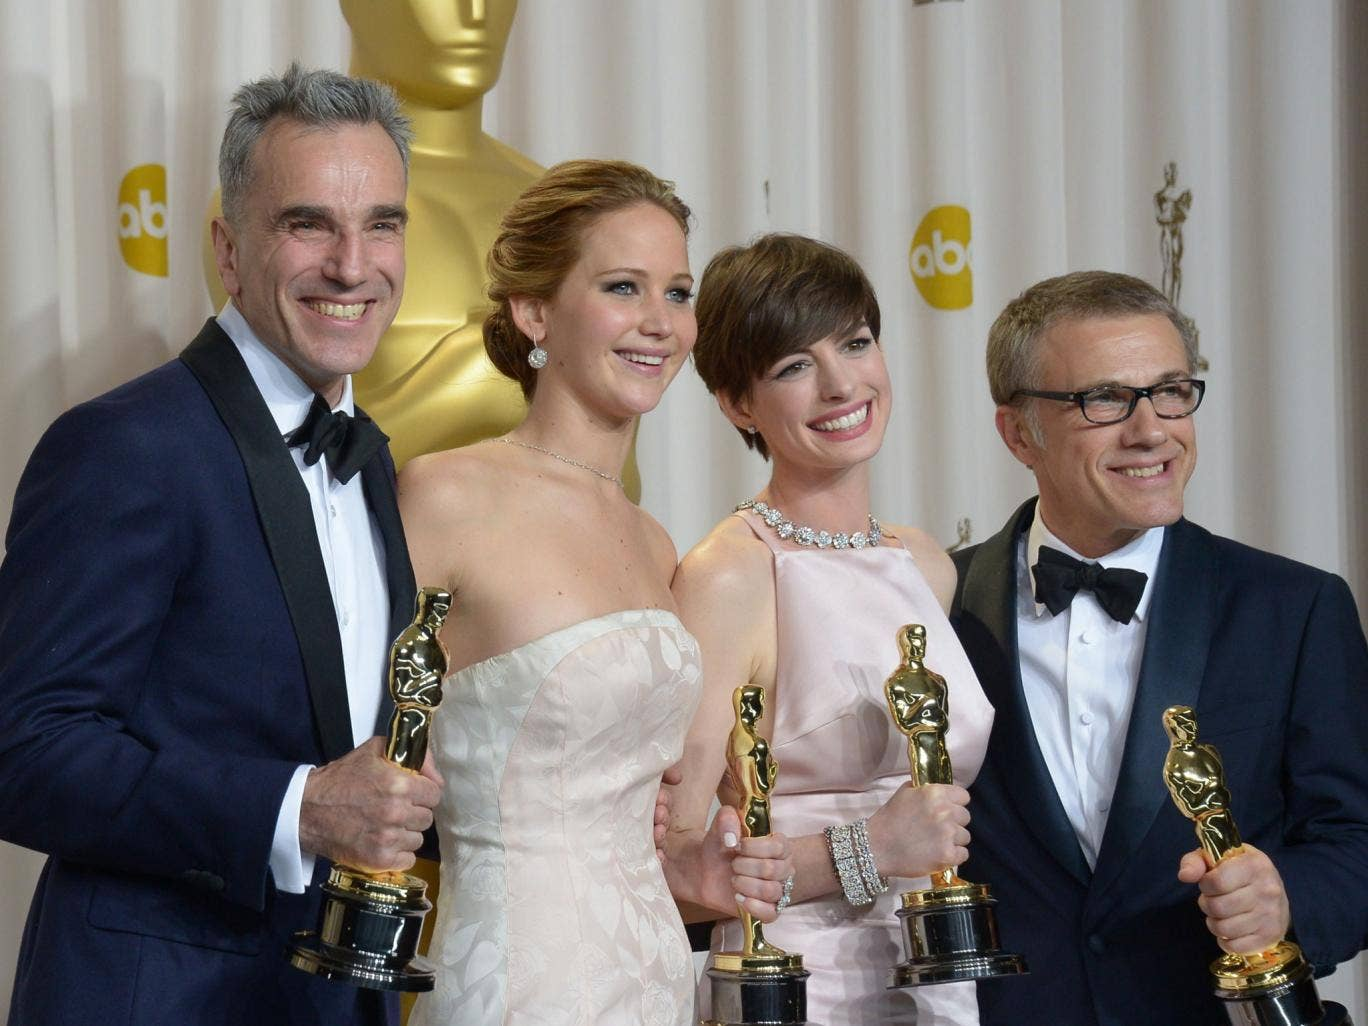 Daniel Day-Lewis, Jennifer Lawrence, Anne Hathaway, and Christoph Waltz at the 2013 Oscars - the four winners will be presenting awards on Sunday